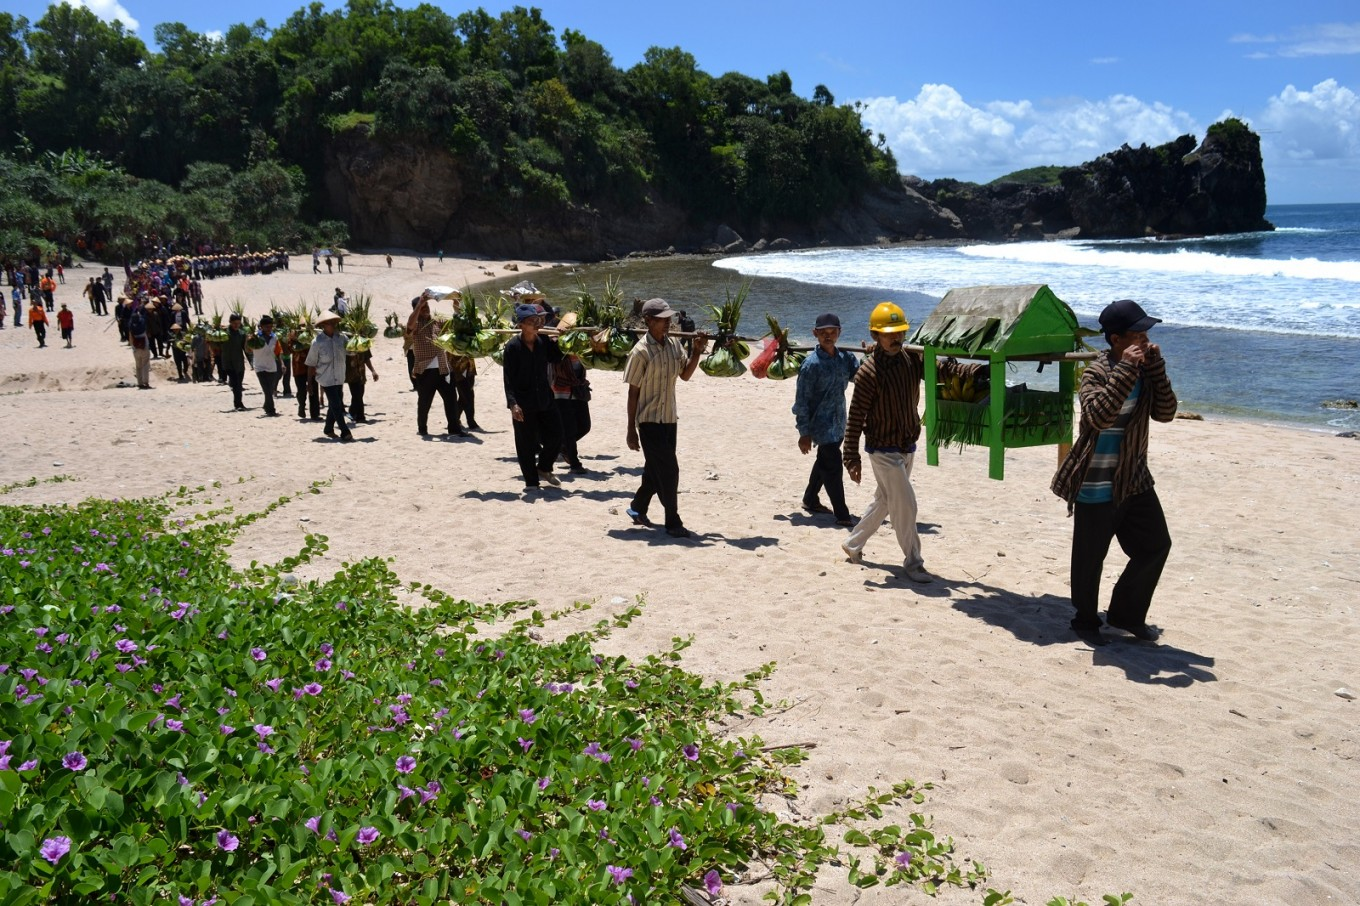 The village procession makes its way from Jungwok Beach to Wediombo Beach during the 'Sedekah Laut Ngalangi' thanksgiving cermony in Gunungkidul, Yogyakarta.